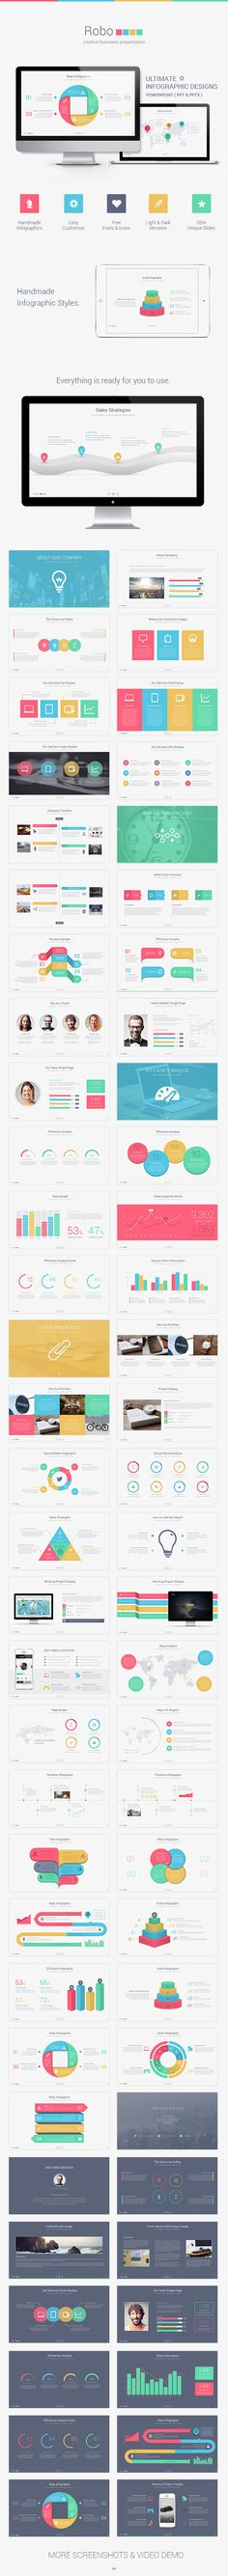 Robo is very useful, creative, clean, multi-purpose Business Presentation Template. You can use our presentation with; Corporate, Creative, Organization, Company and more presentations. Our template is very easy to customize! Robo has many info graphics which made by only Powerpoint, no other application needed! http://graphicriver.net/item/robo-powerpoint-presentation-template/creativetouch